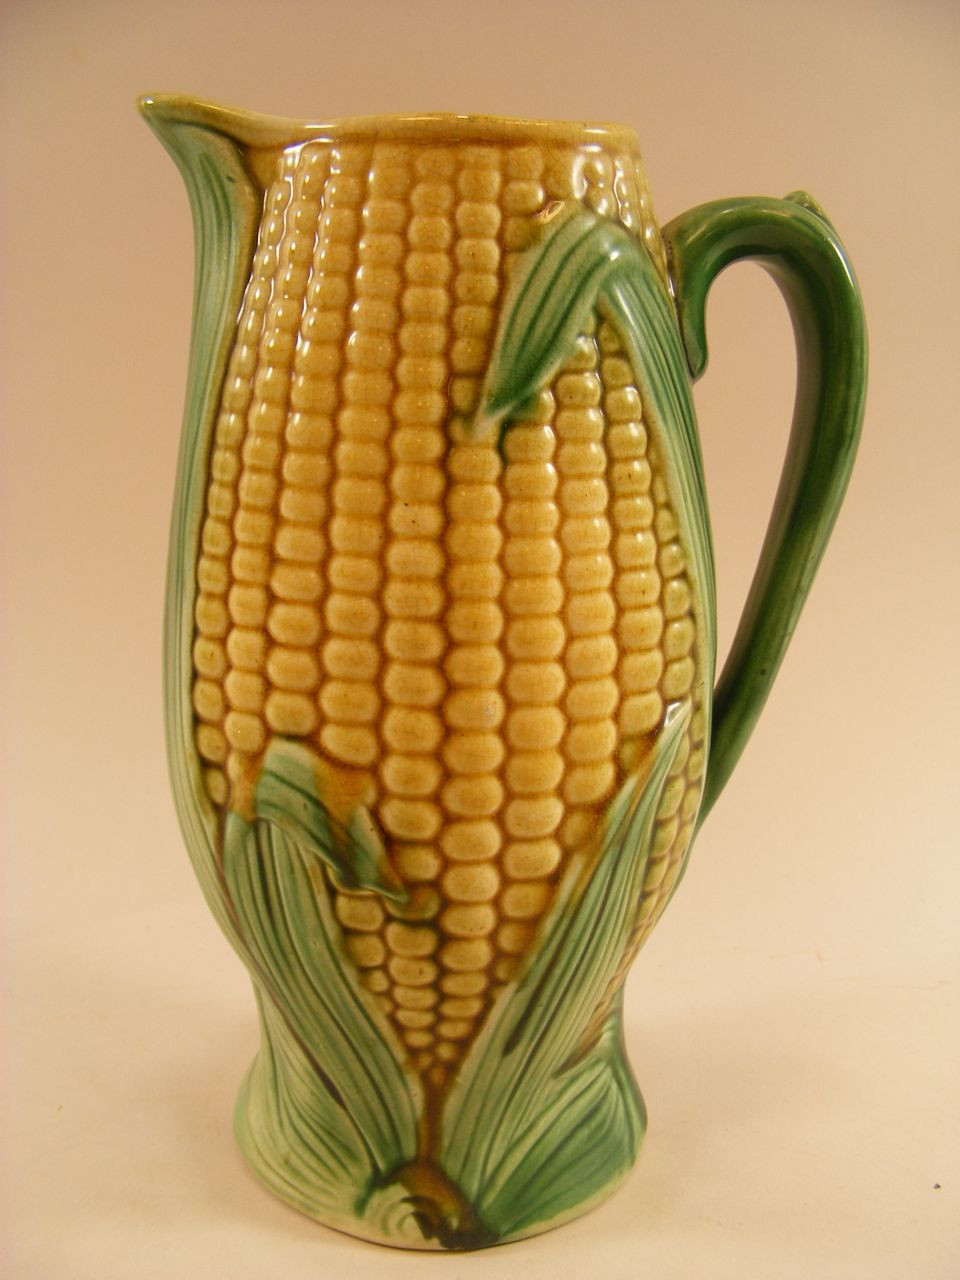 retro vases for sale of seeing a set of corn dishes like this at an auction is what started within seeing a set of corn dishes like this at an auction is what started the whole barb and anne corn thing we thought wed bid on the set as a joke for mom